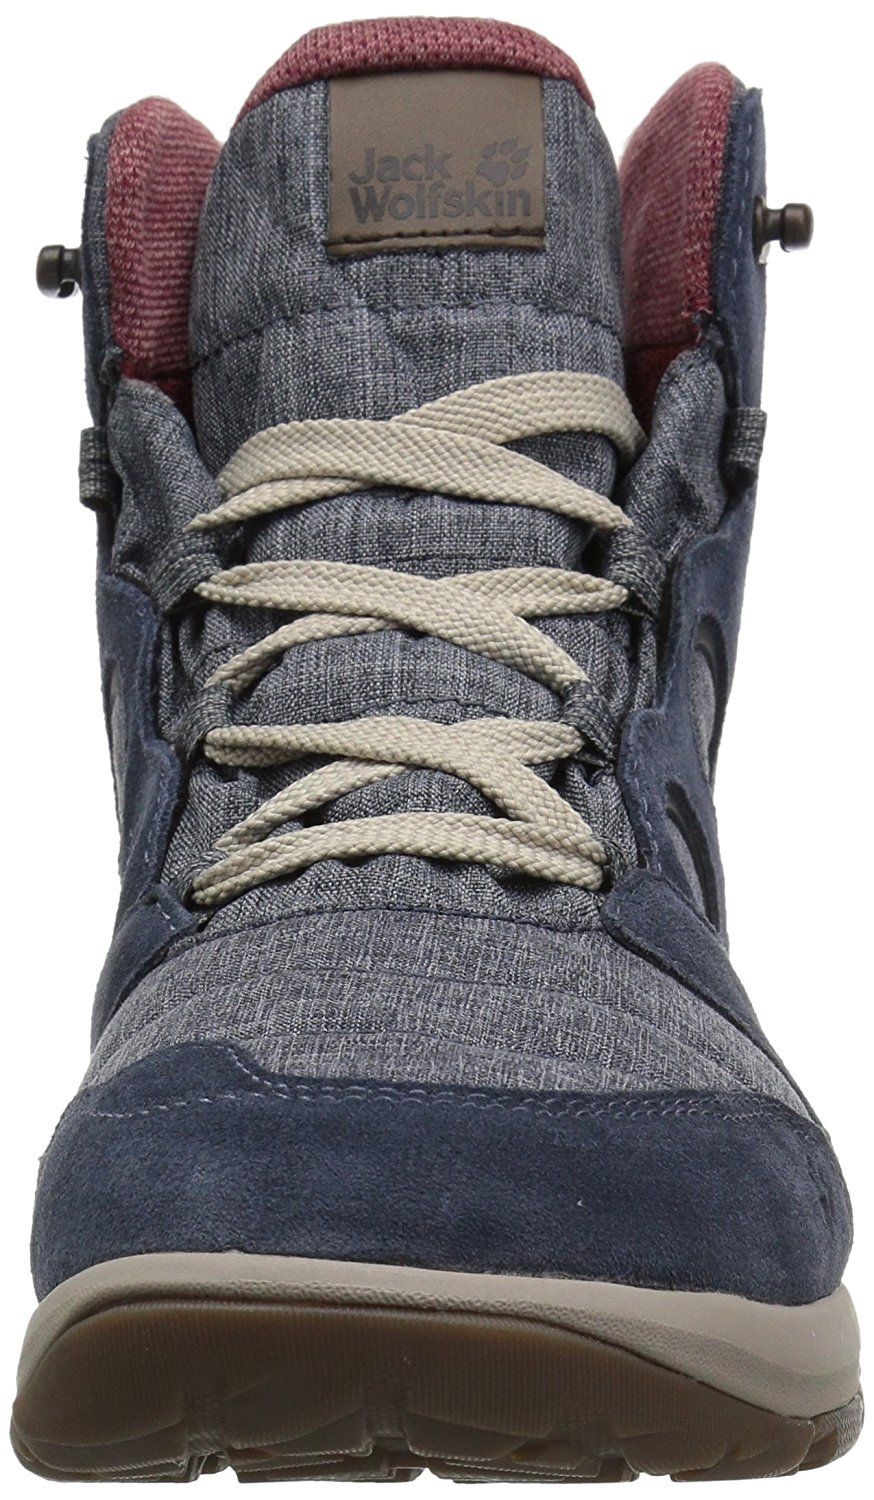 Texapore Jack Vancouver W Wolfskin Women's Fashion Mid Boot bf7g6y